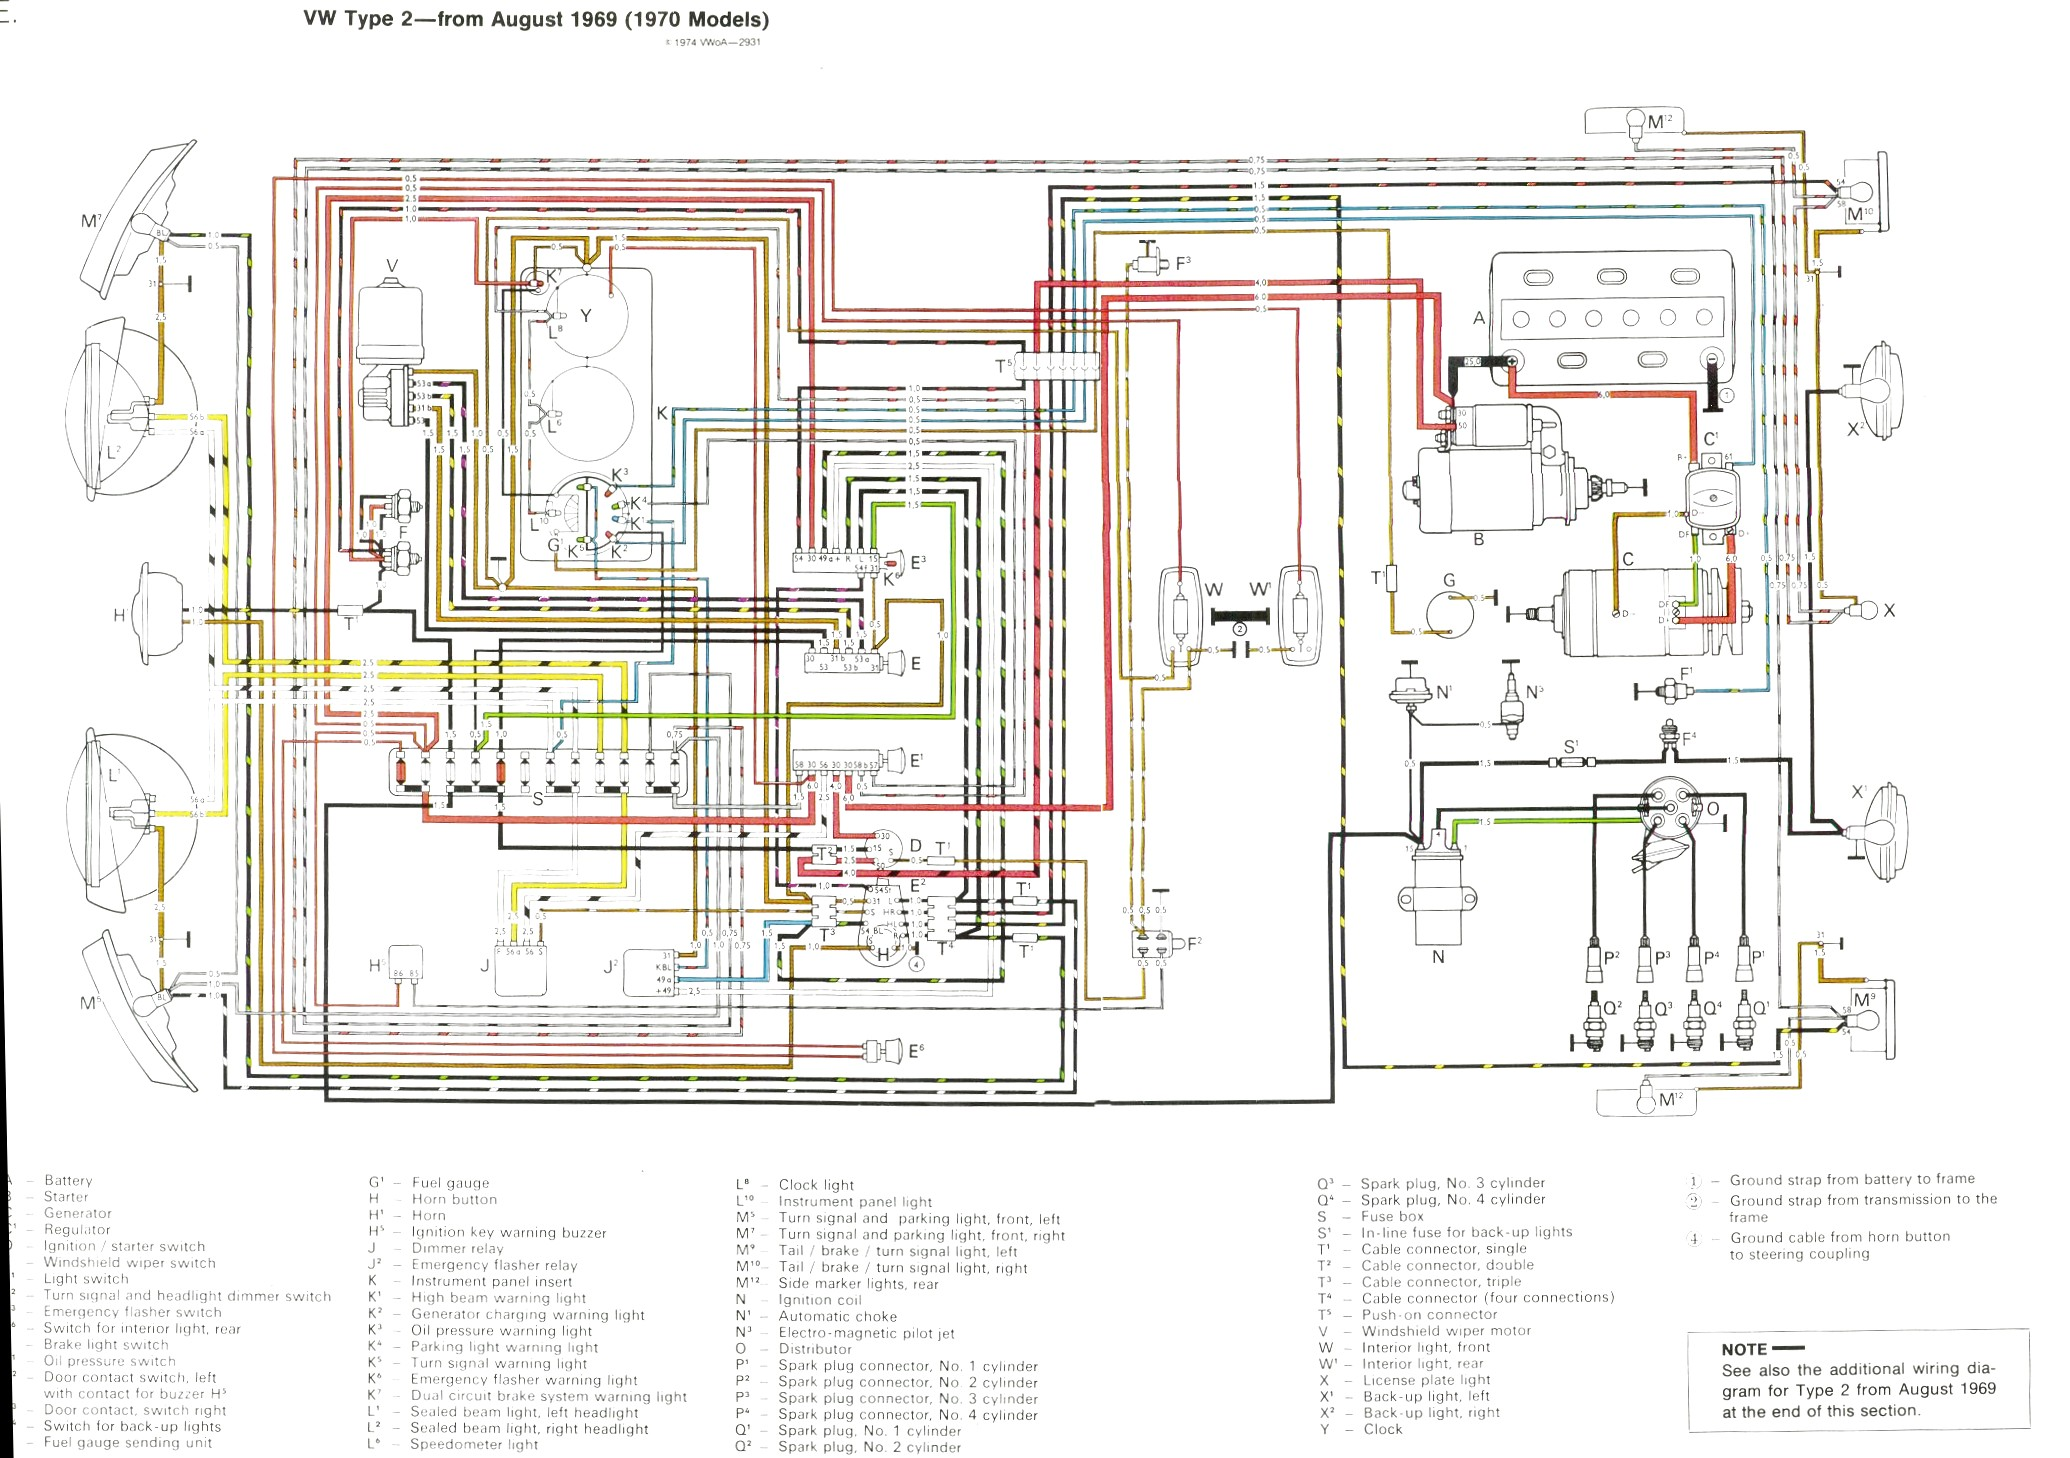 bus 69 70 baywindow fusebox layout 1971 vw bus wiring diagram at nearapp.co